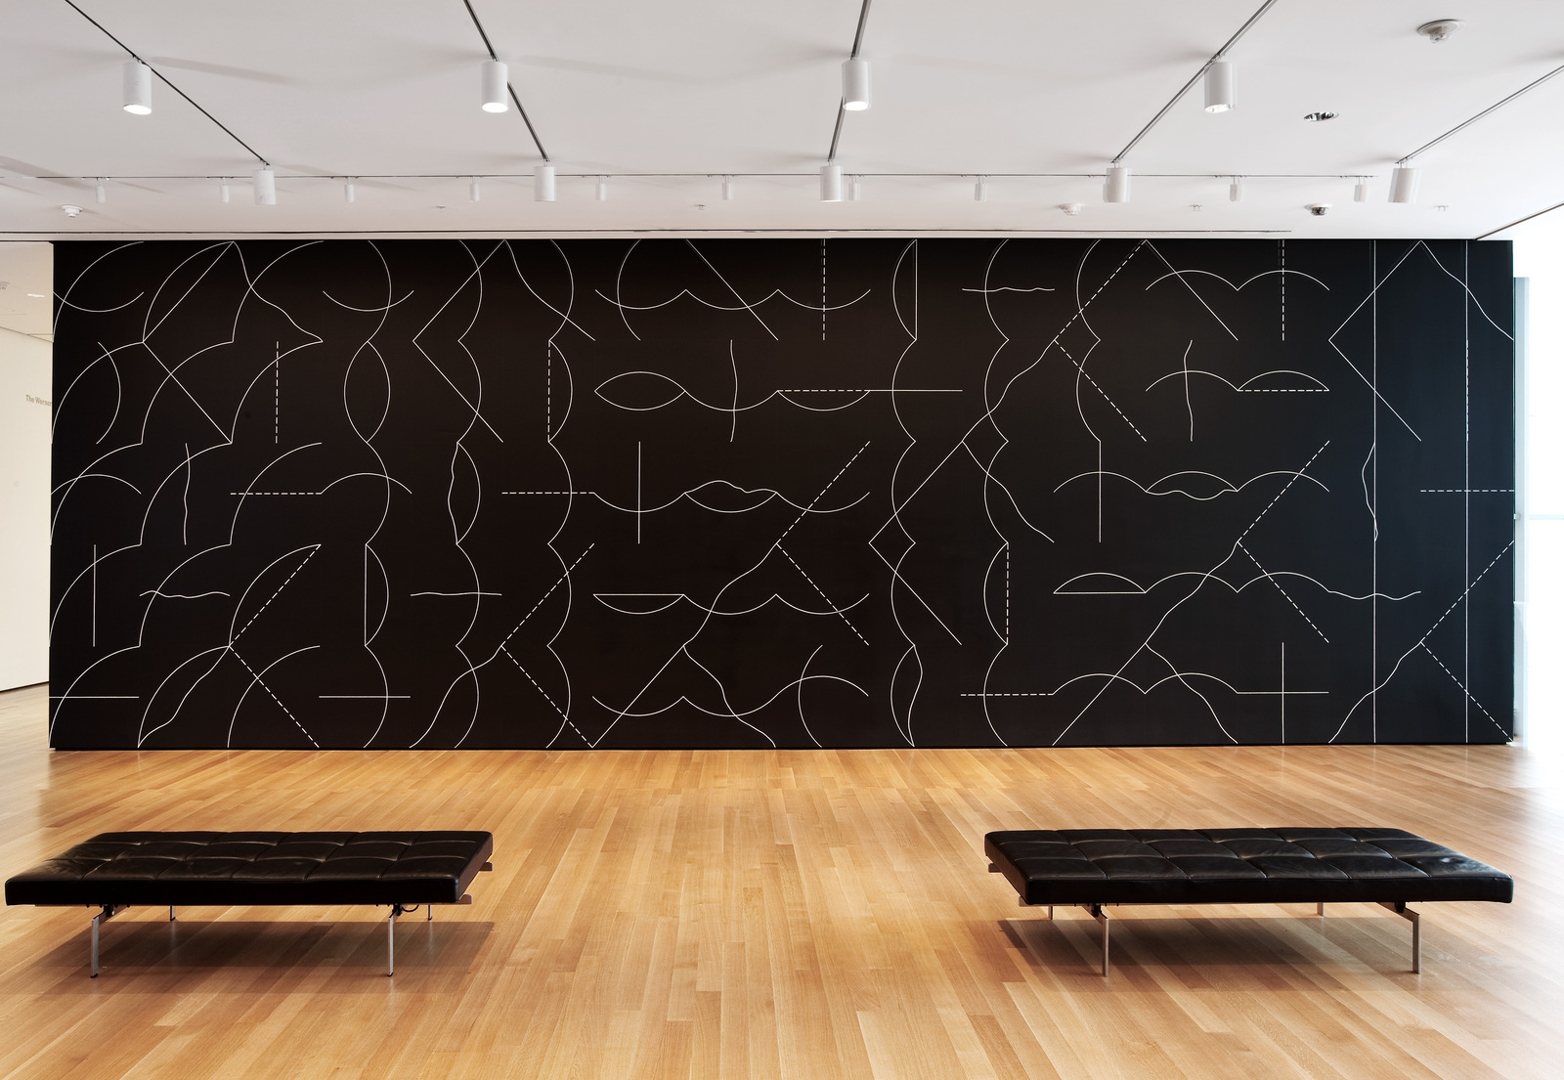 Installation view of Sol LeWitt's Wall Drawing #260 at The Museum of Modern Art, 2008. image